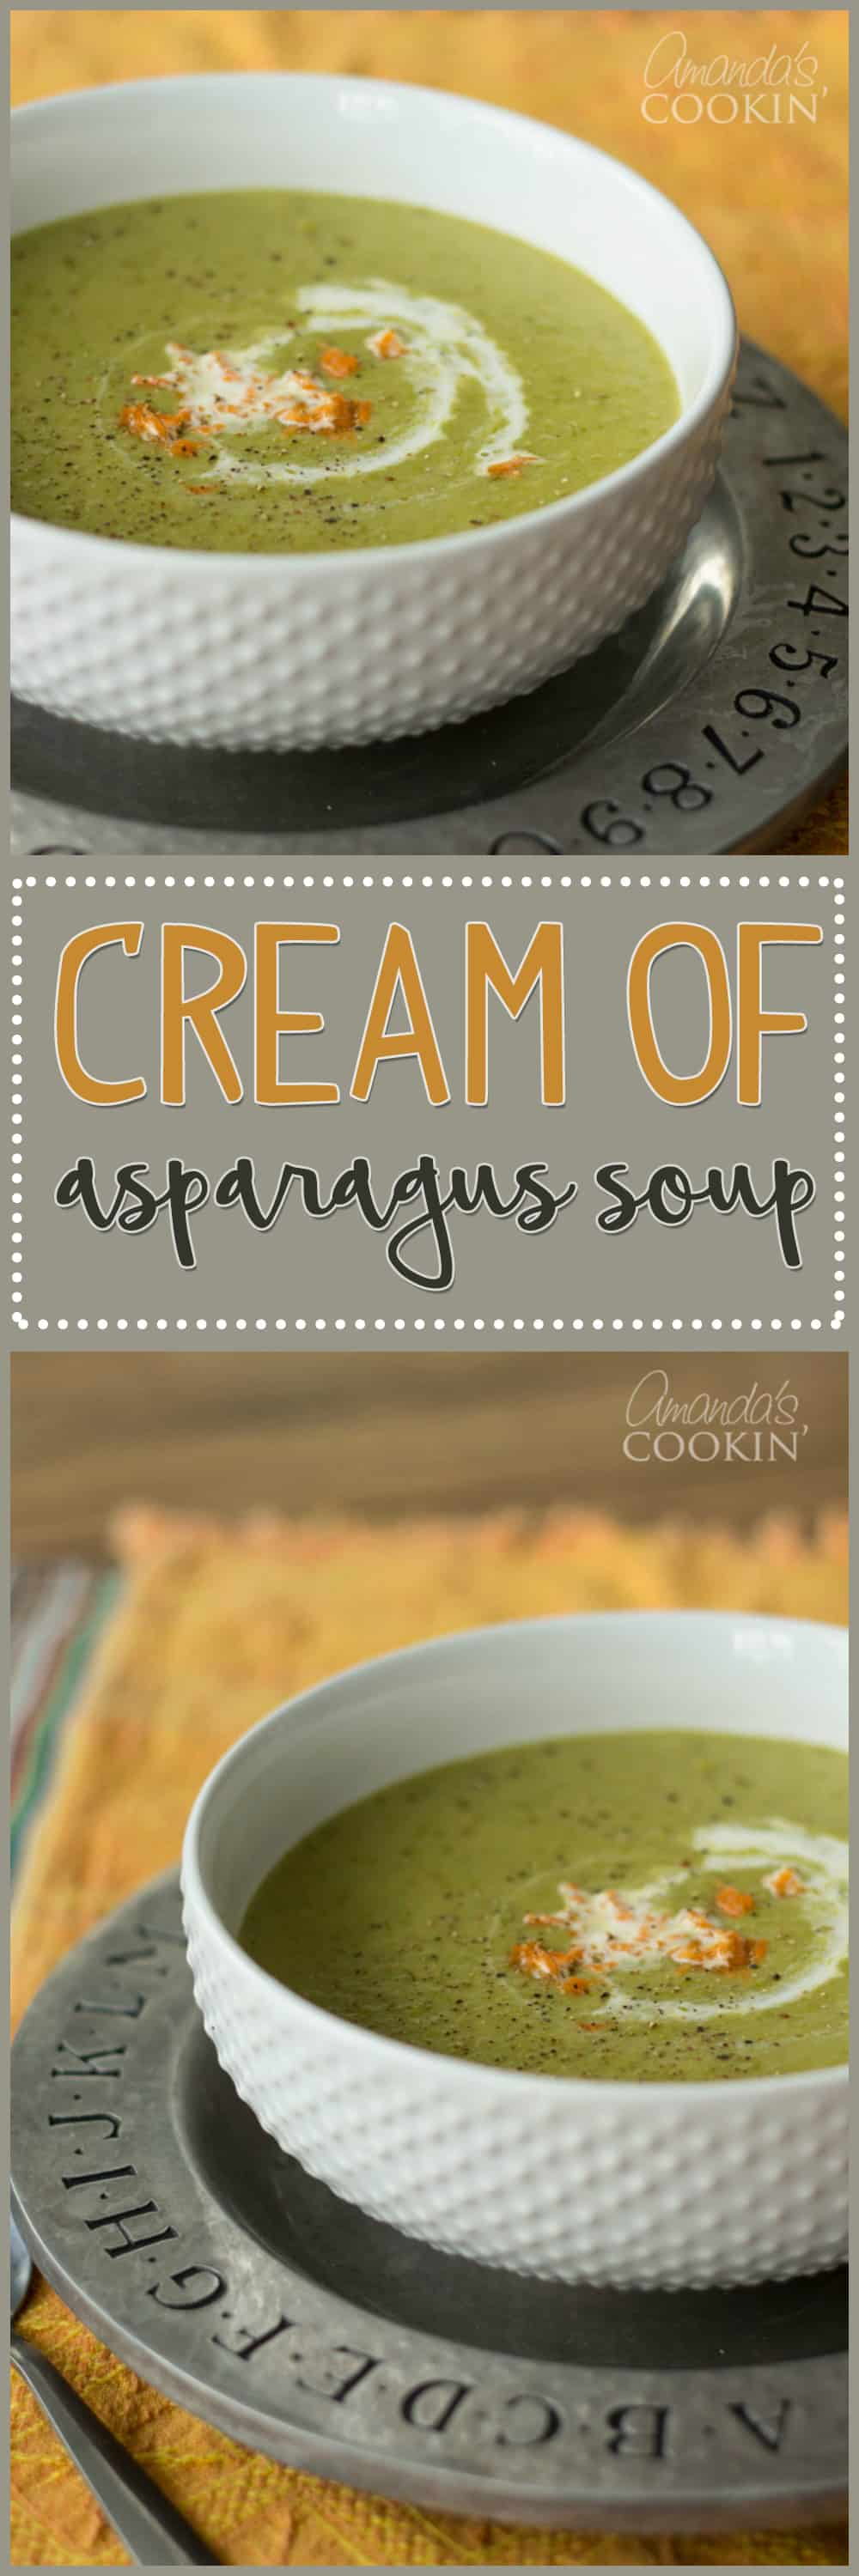 This cream of asparagus soup is surprisingly bursting with flavor! Only a few simple ingredients and asparagus lovers can enjoy this soup for days.